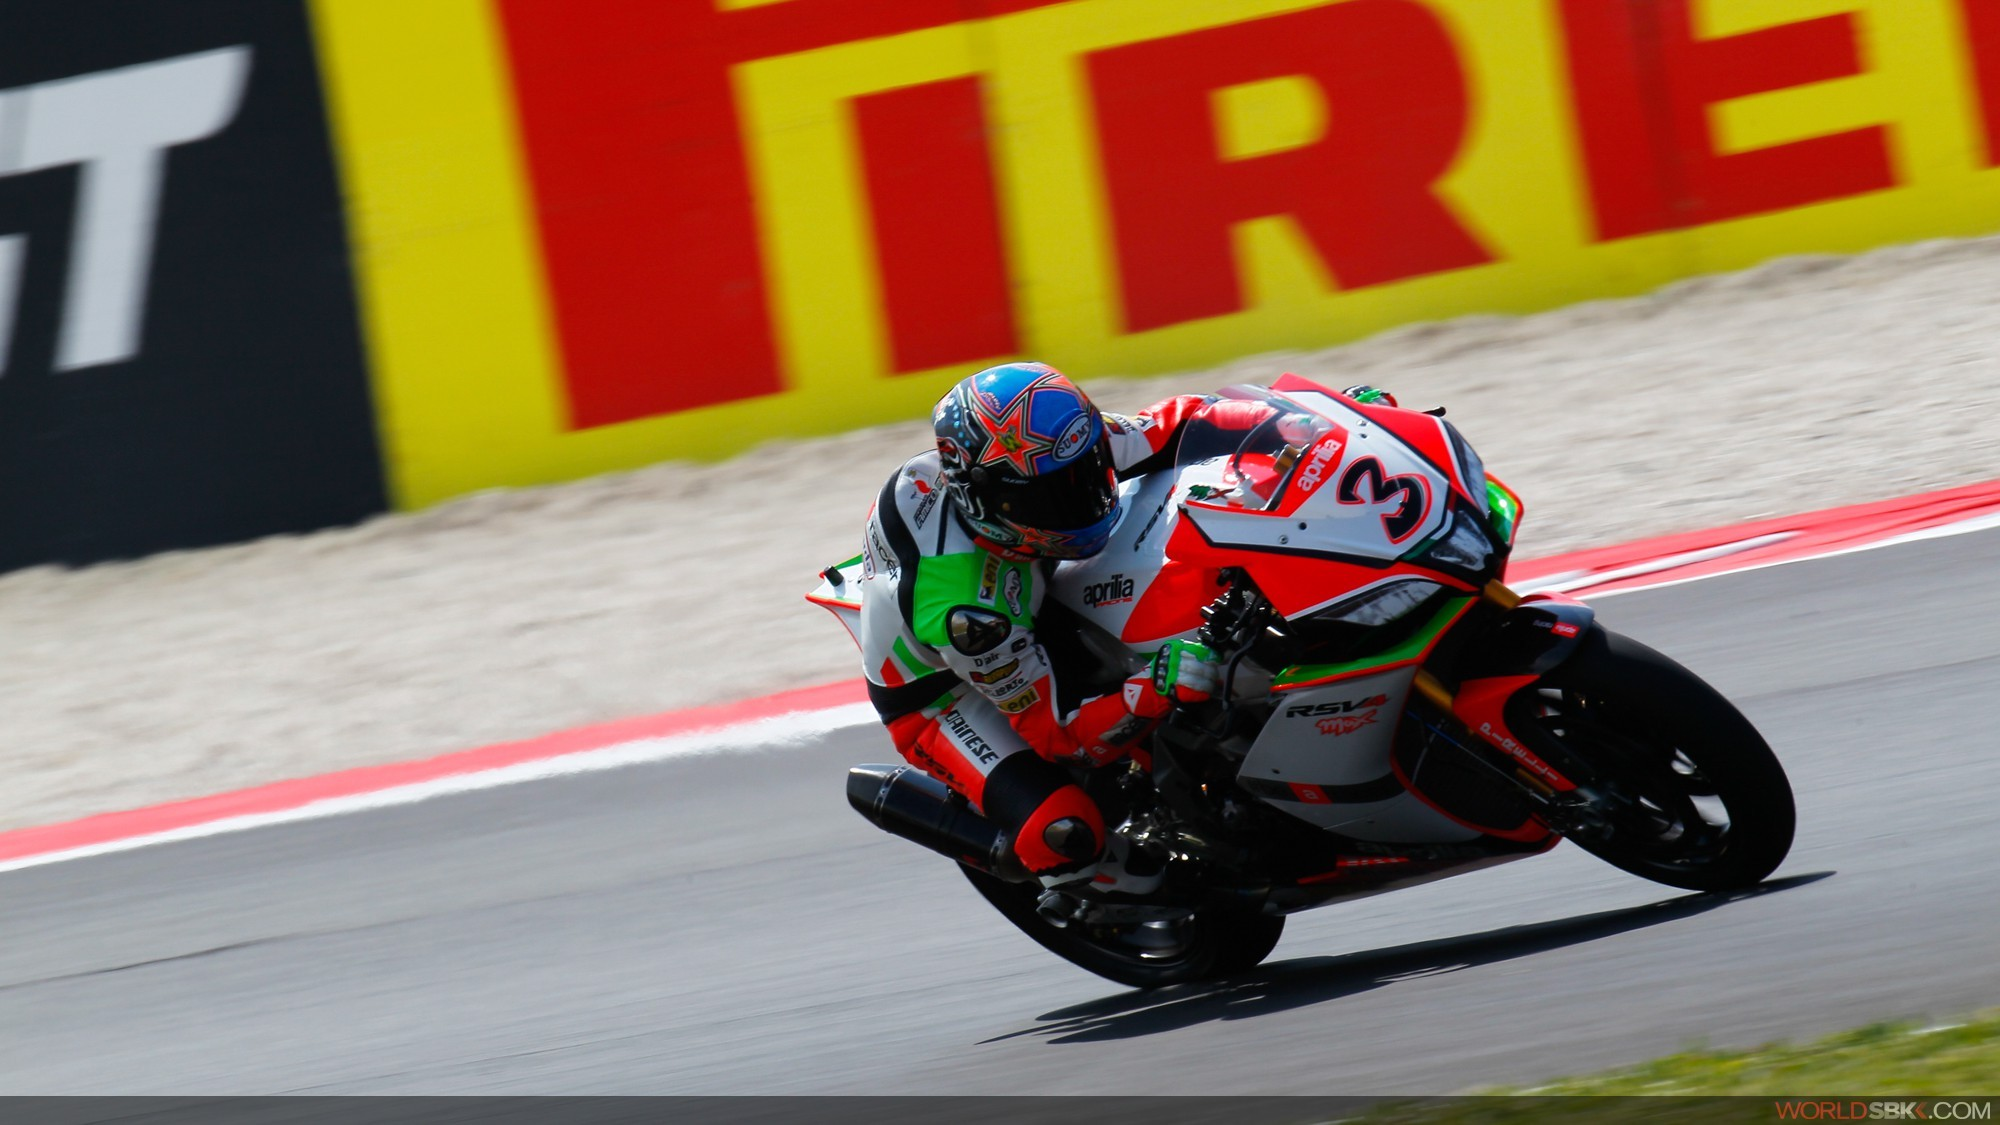 Max biaggi injured in mtb crash uncertain for qatar also under 2015 max biaggi at misano altavistaventures Gallery